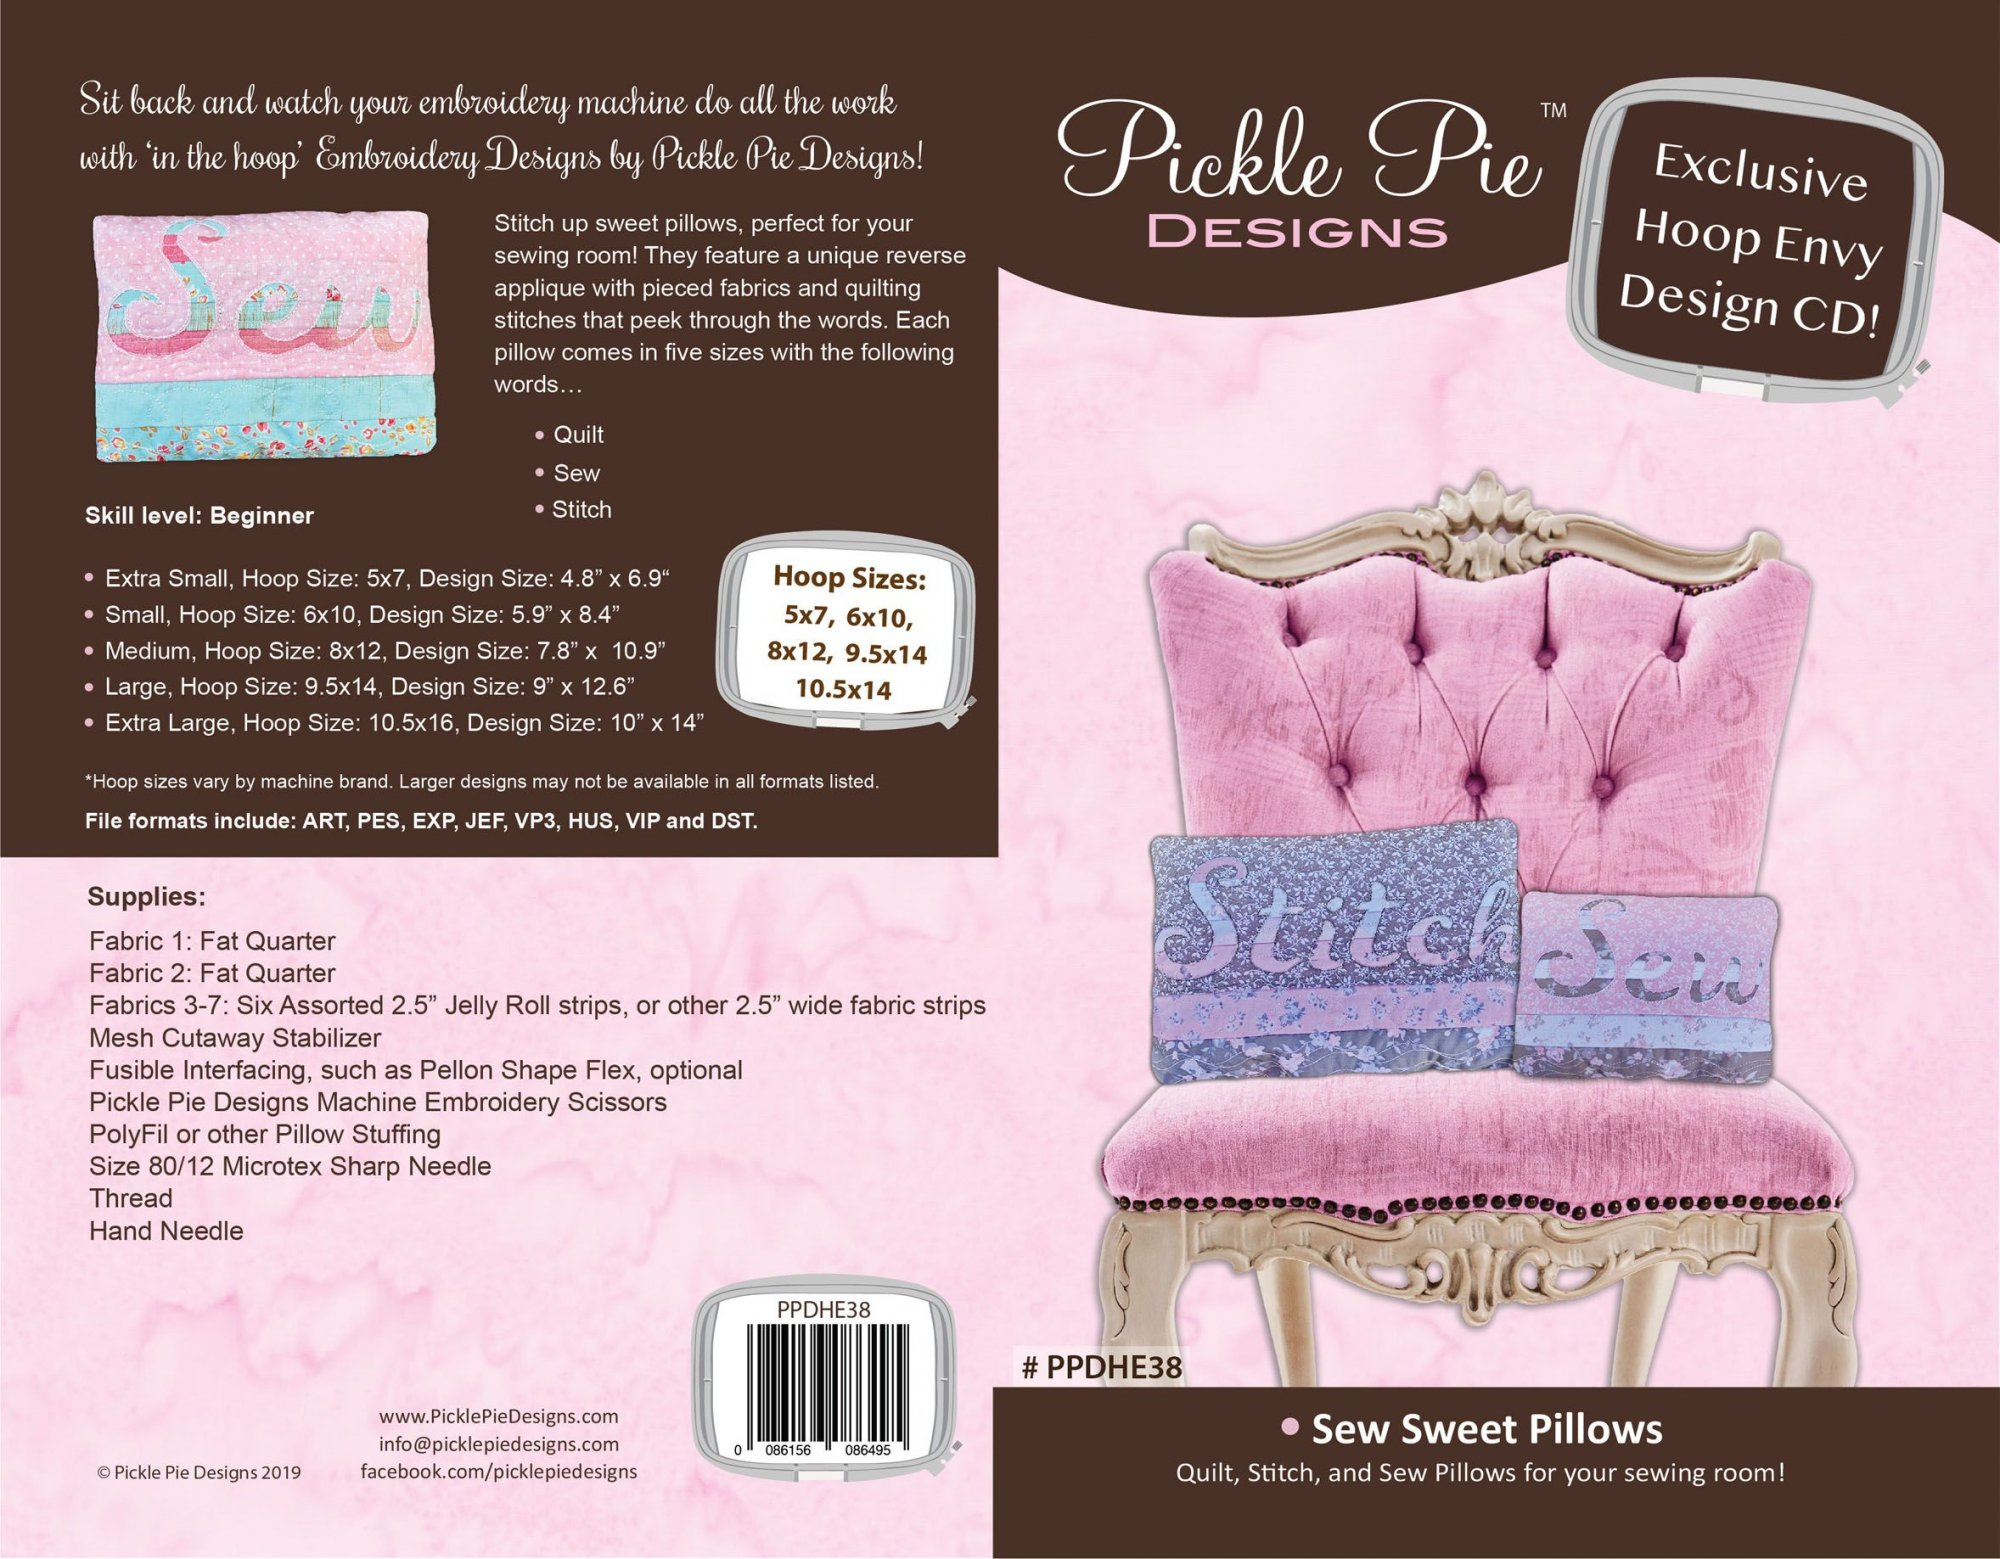 Sew Sweet Pillows ITH Embroidery Design collection CD